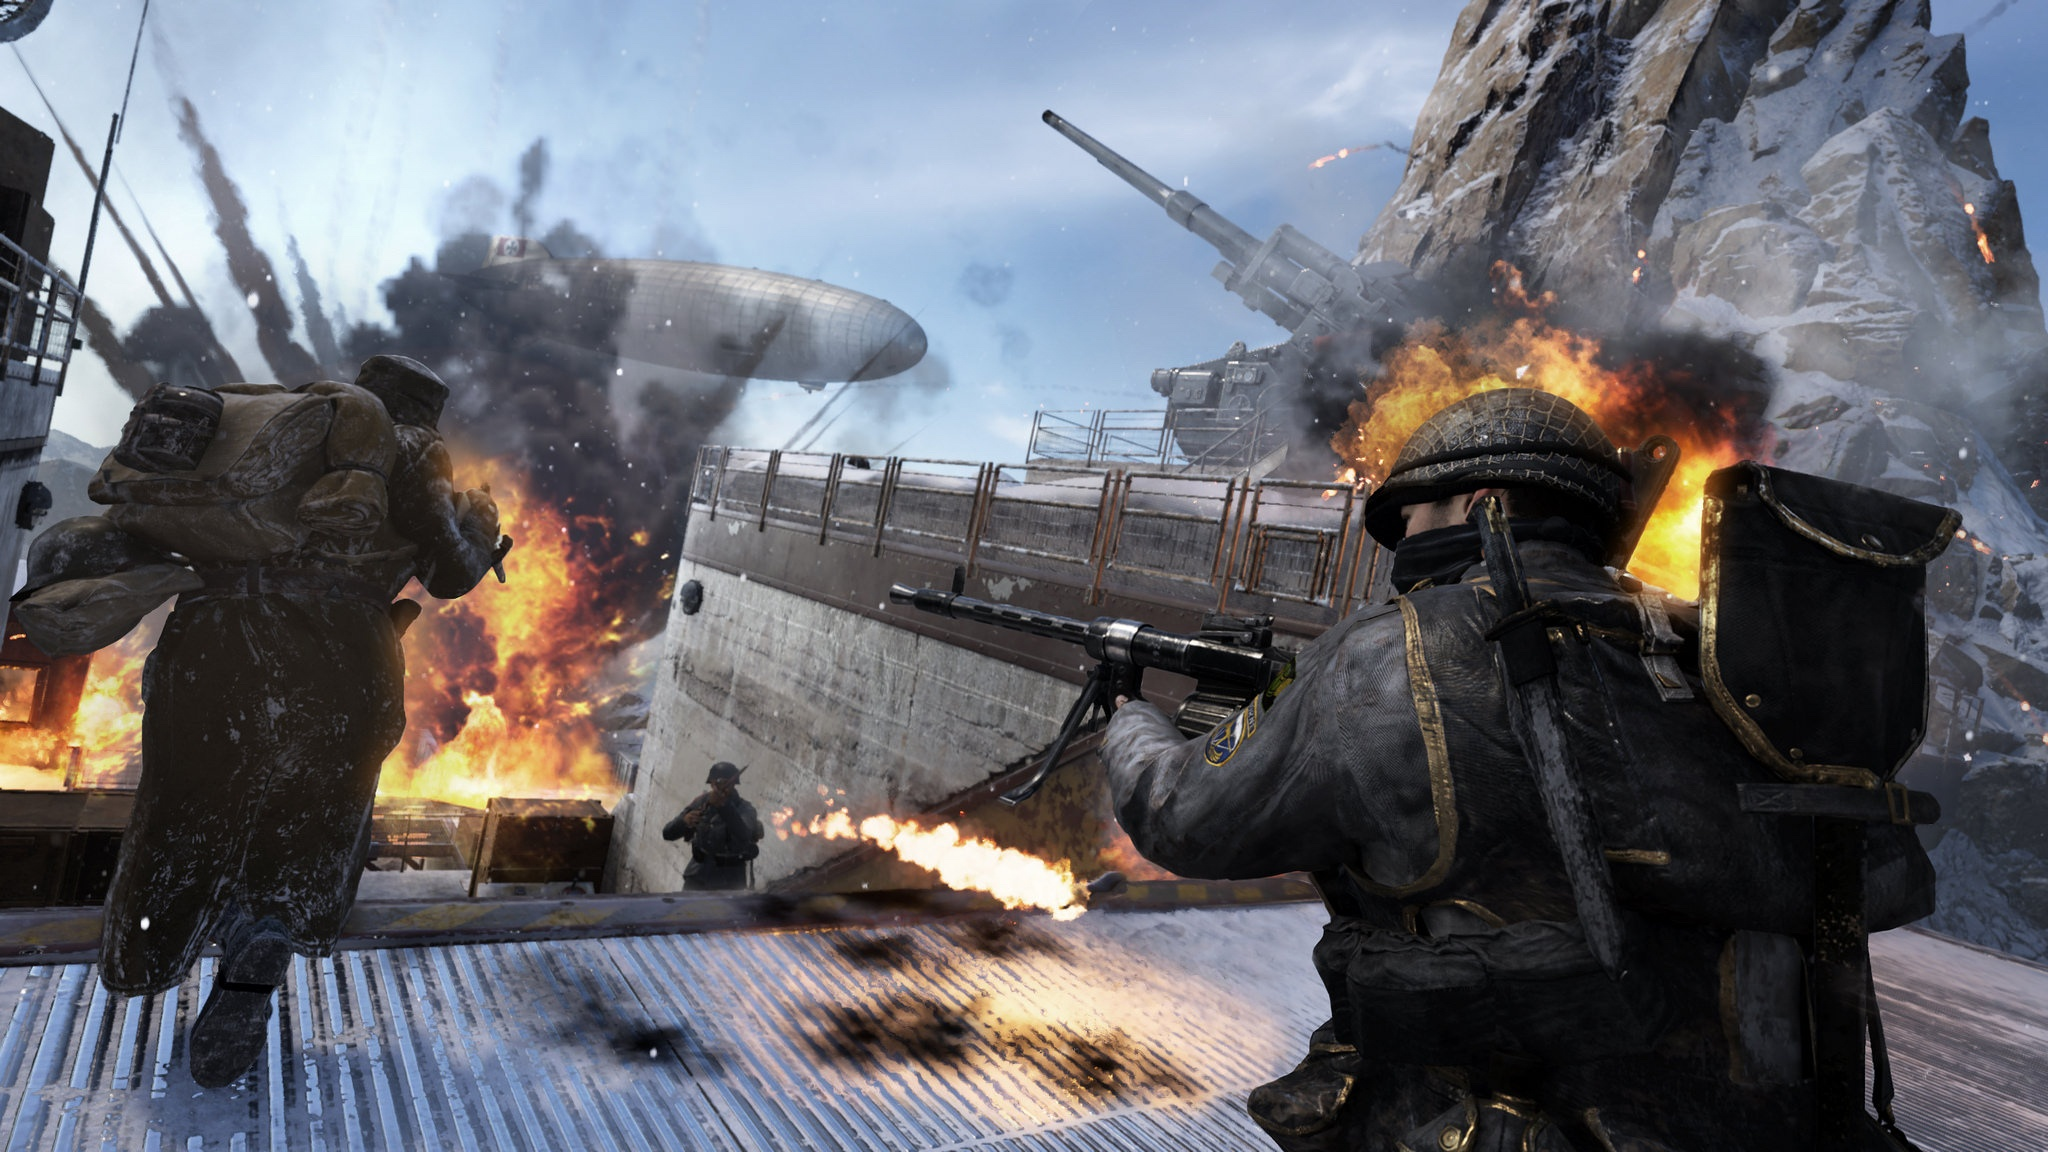 3D, Action, Activision, Call of Duty: World War II – Shadow War DLC Pack 4, Call of Duty: World War II – Shadow War DLC Pack 4 Review, first-person, FPS, multiplayer, PS4, PS4 Review, Rating 8/10, Raven Software, Shadow War, Shooter, Sledgehammer Games, War, World War II